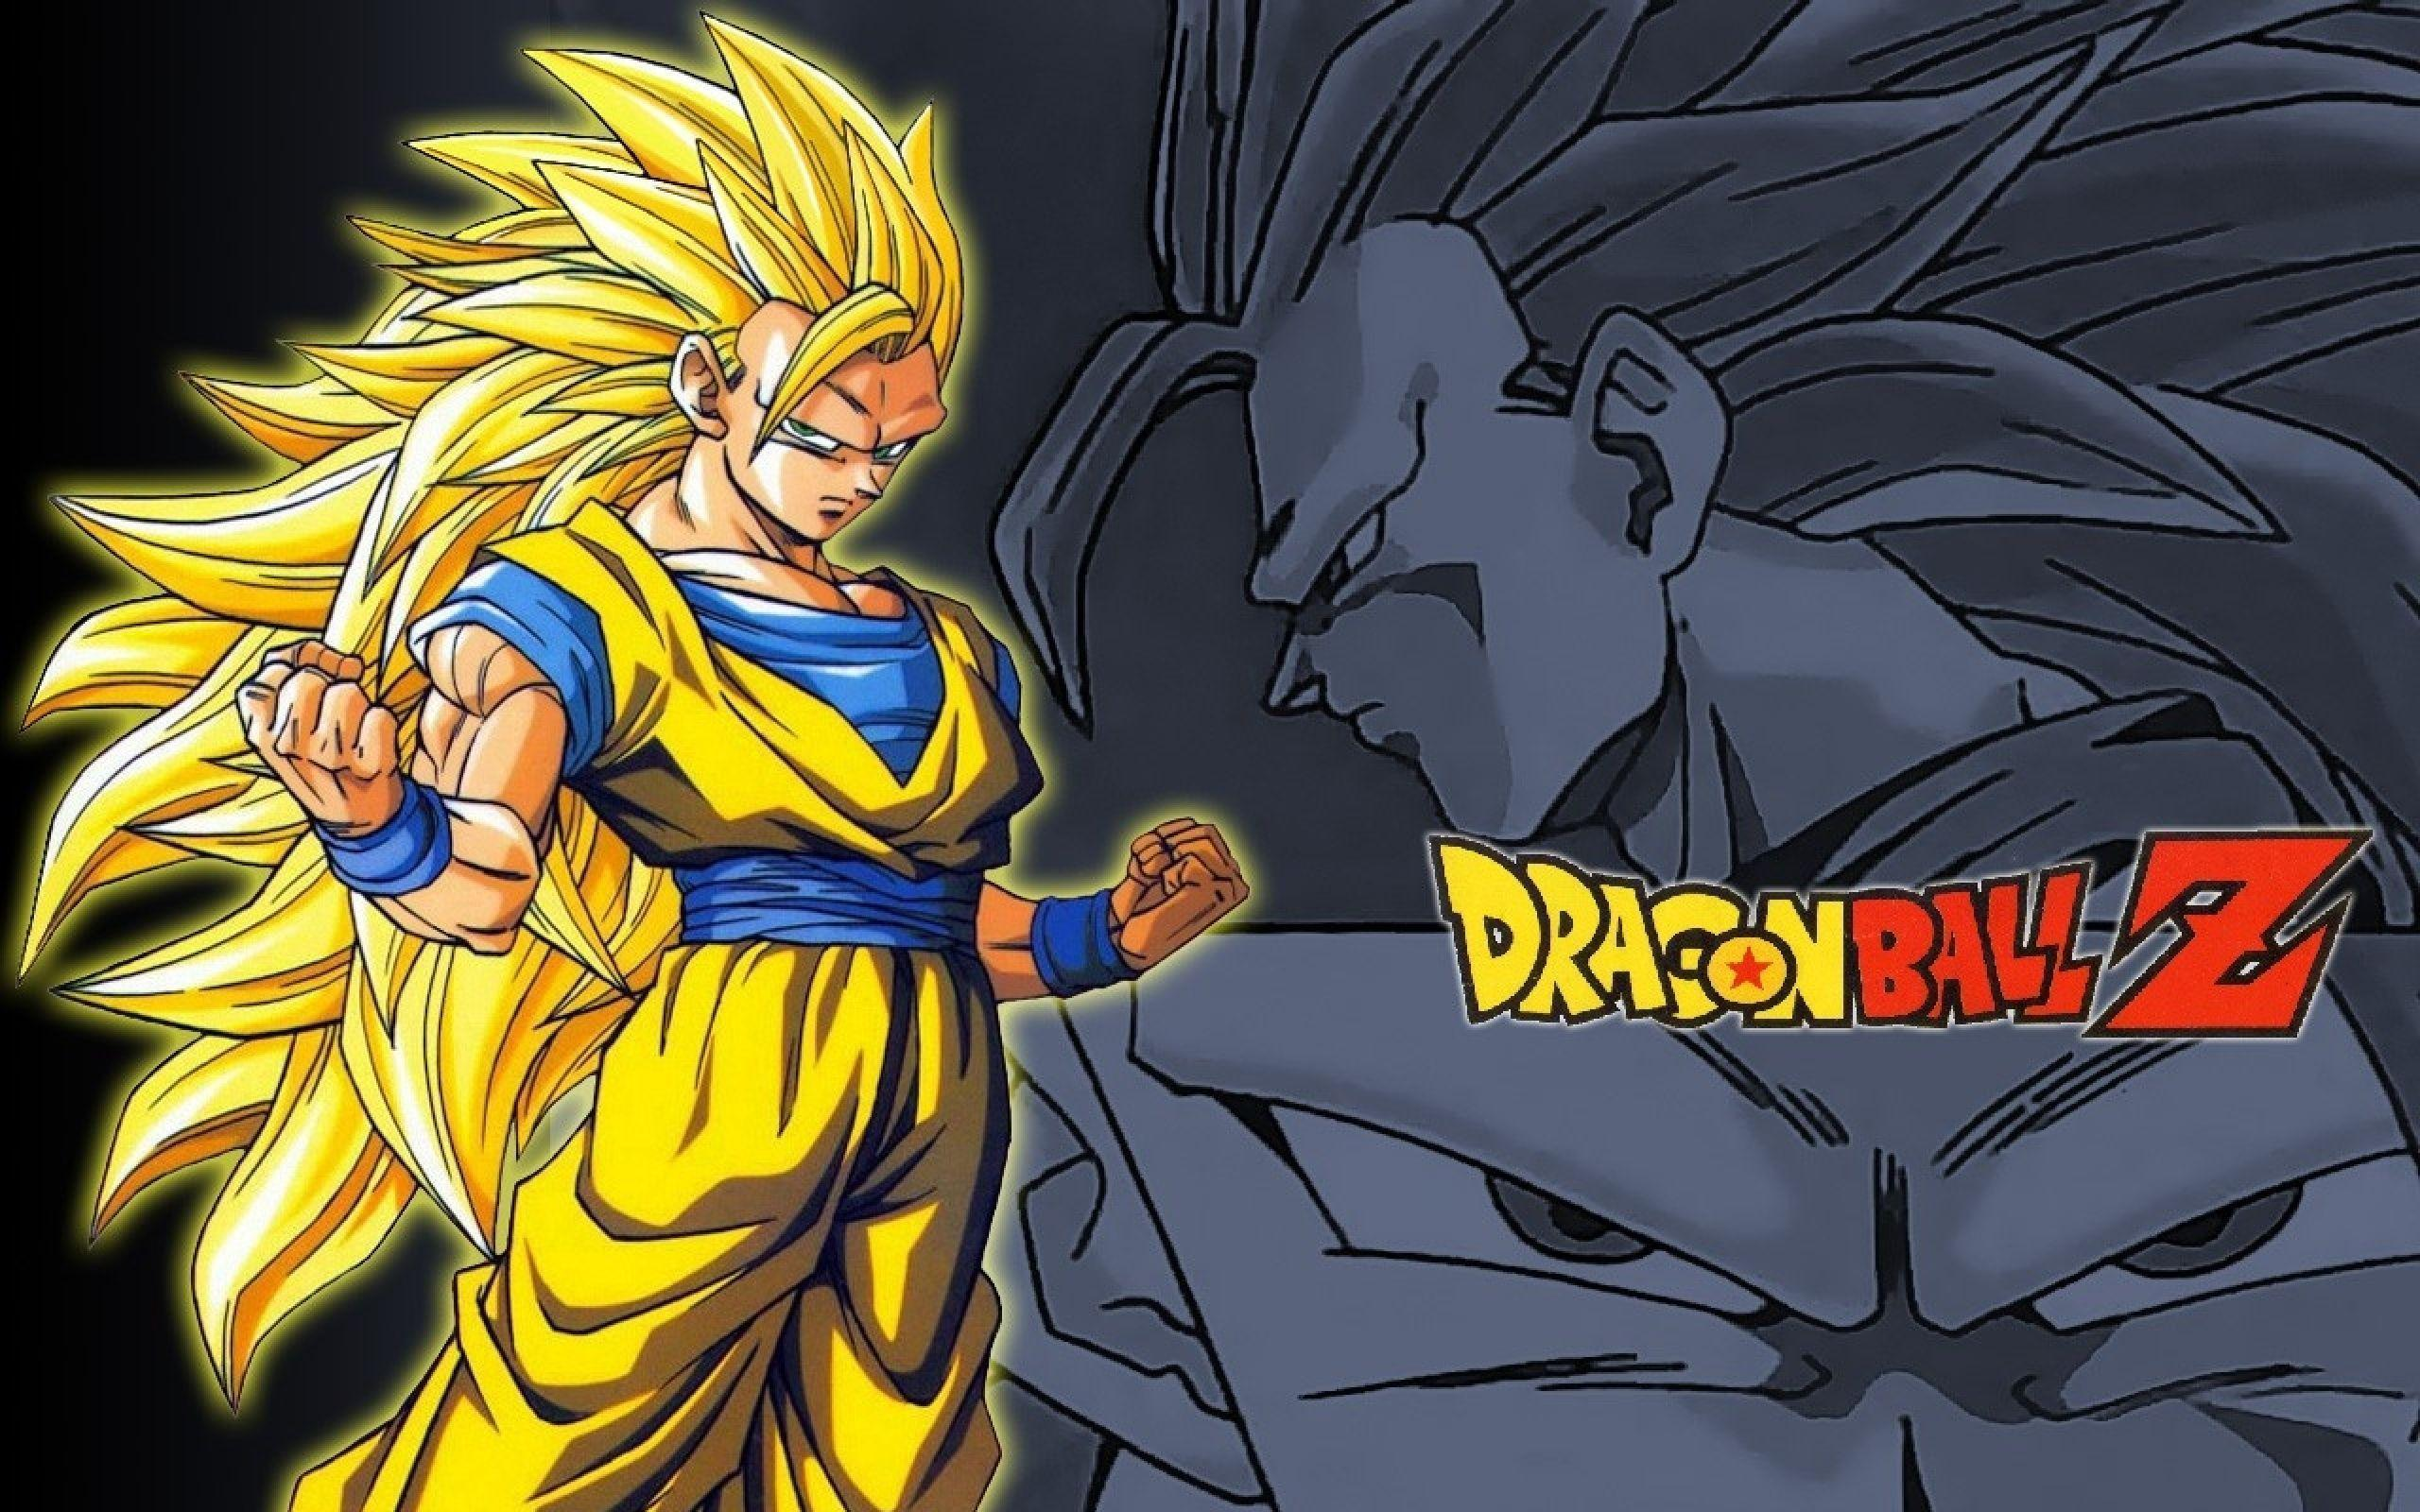 Dragon Ball Z Wallpapers – All Characters in High Resolution